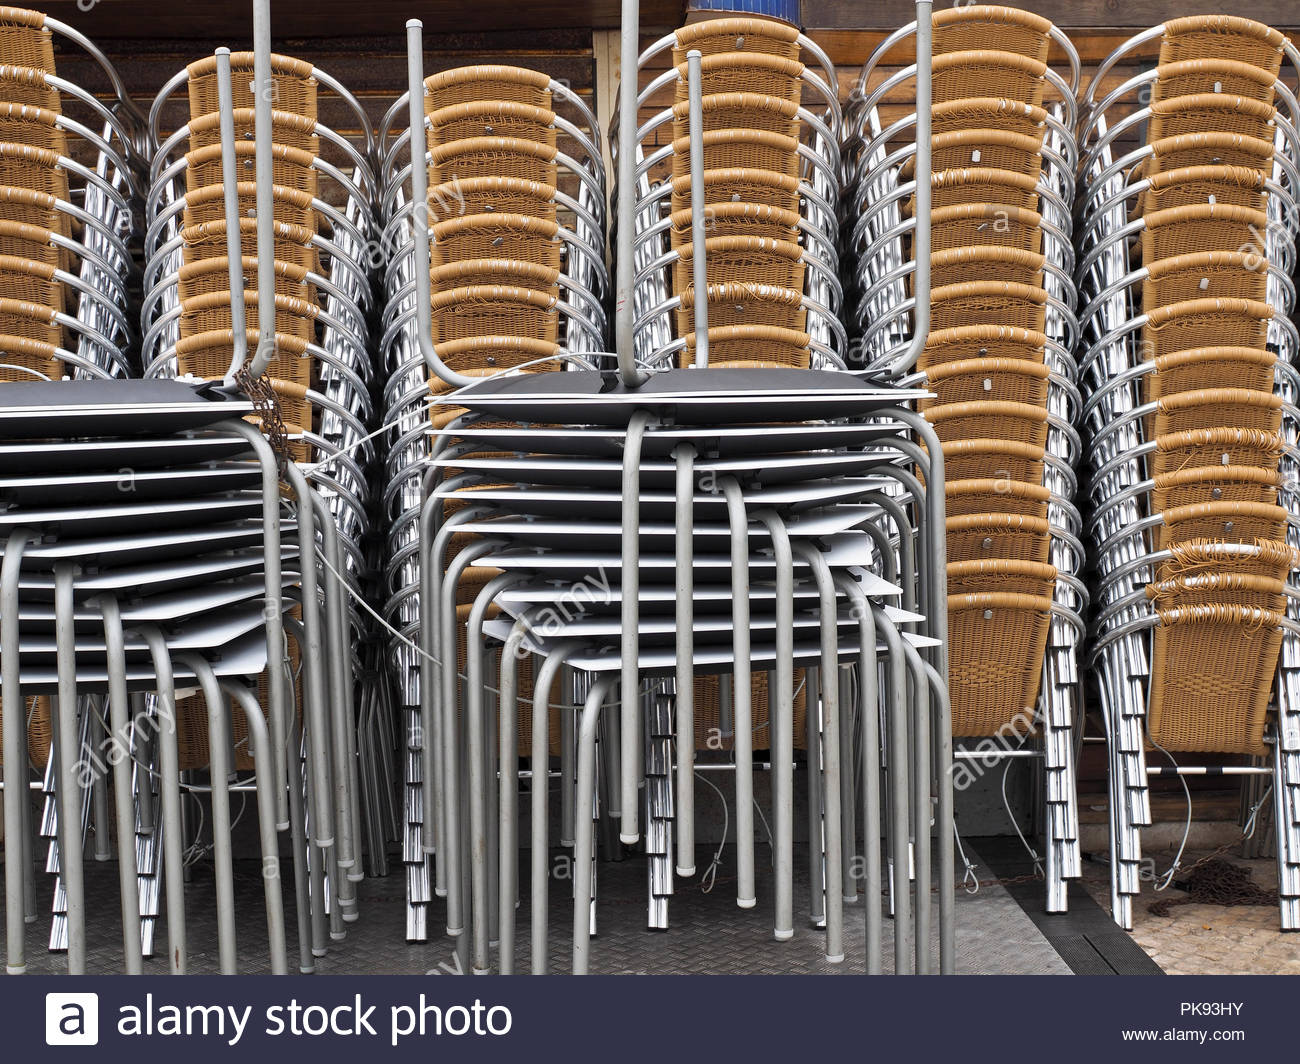 Merveilleux Stacked Tables And Chairs Stock Photo: 218403303   Alamy